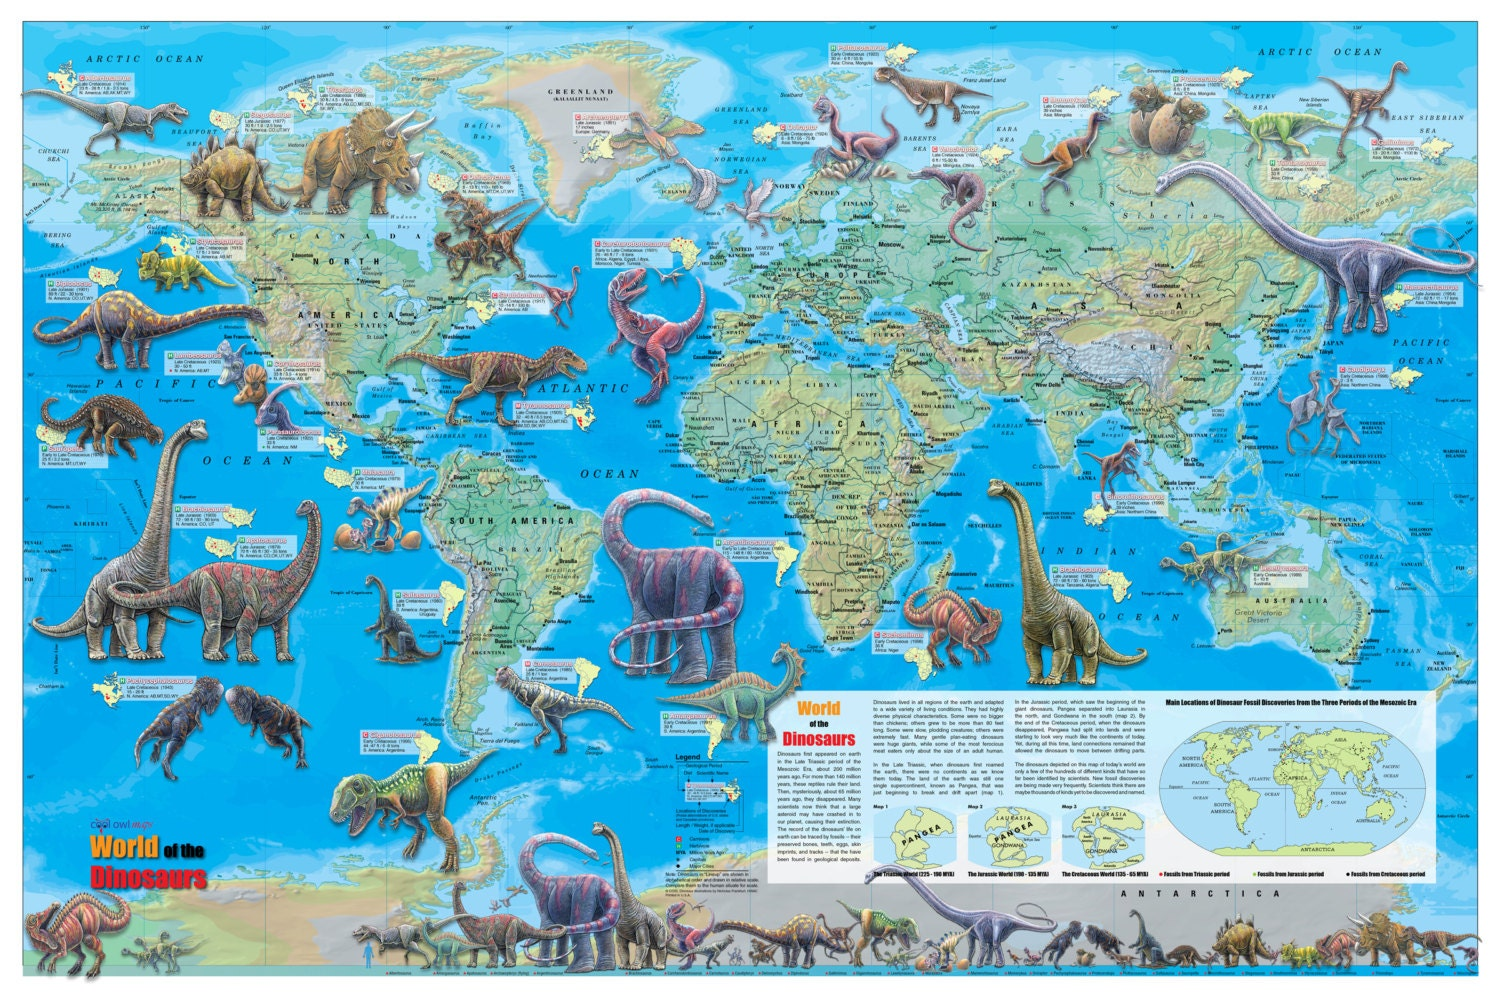 World of the Dinosaurs Wall Map Poster 36x24